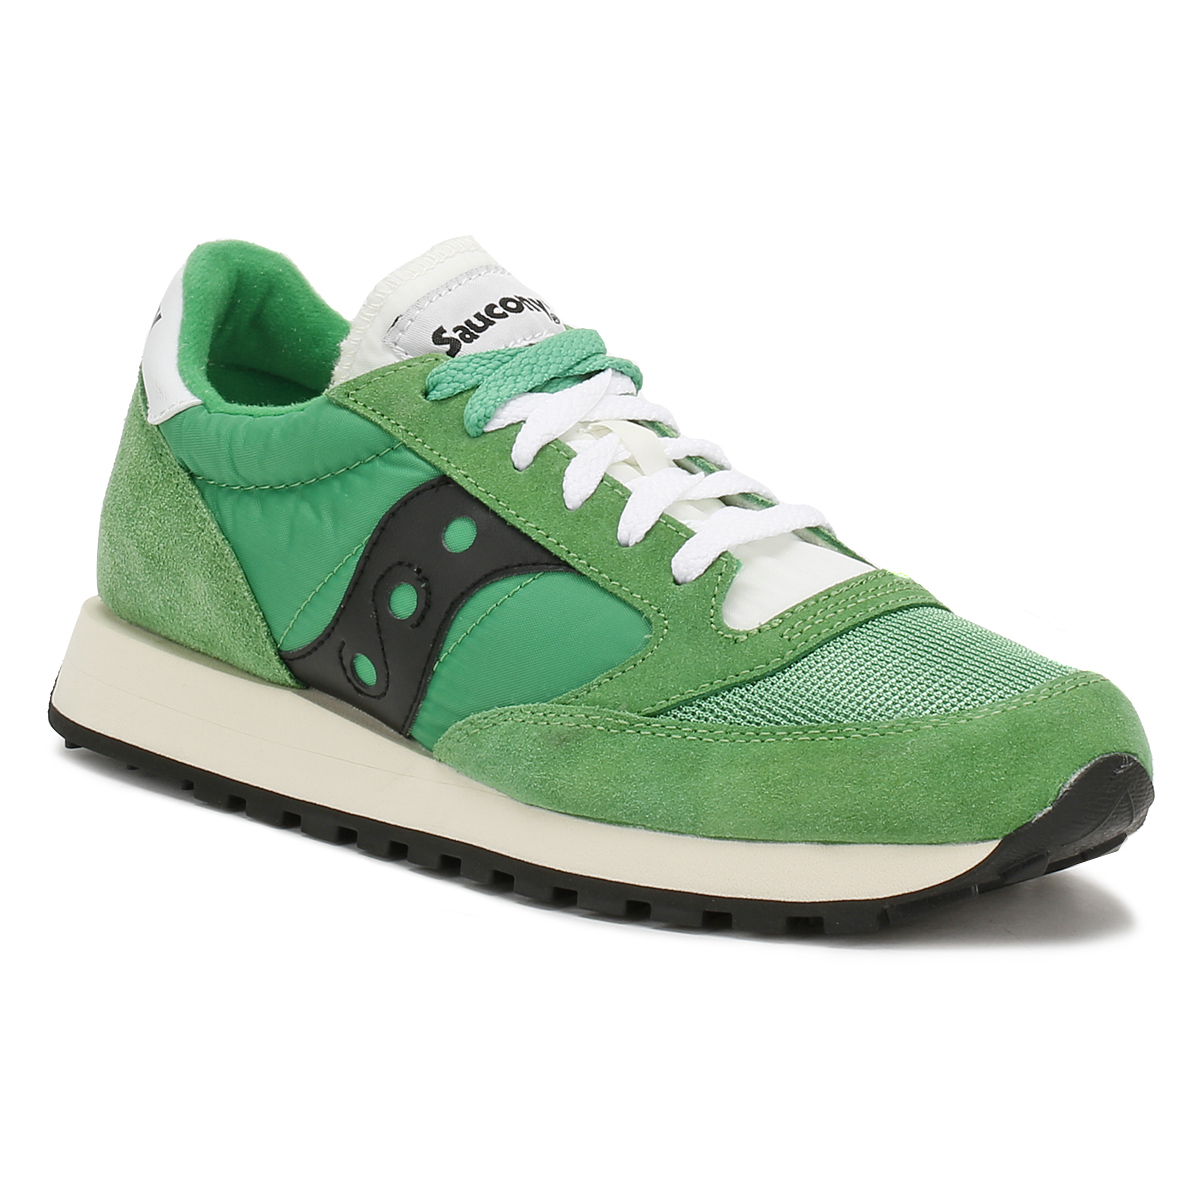 Saucony Trainers, Unisex Jazz Original Vintage Trainers, Saucony Mixed Upper, Retro Sports Schuhes 0fee0c